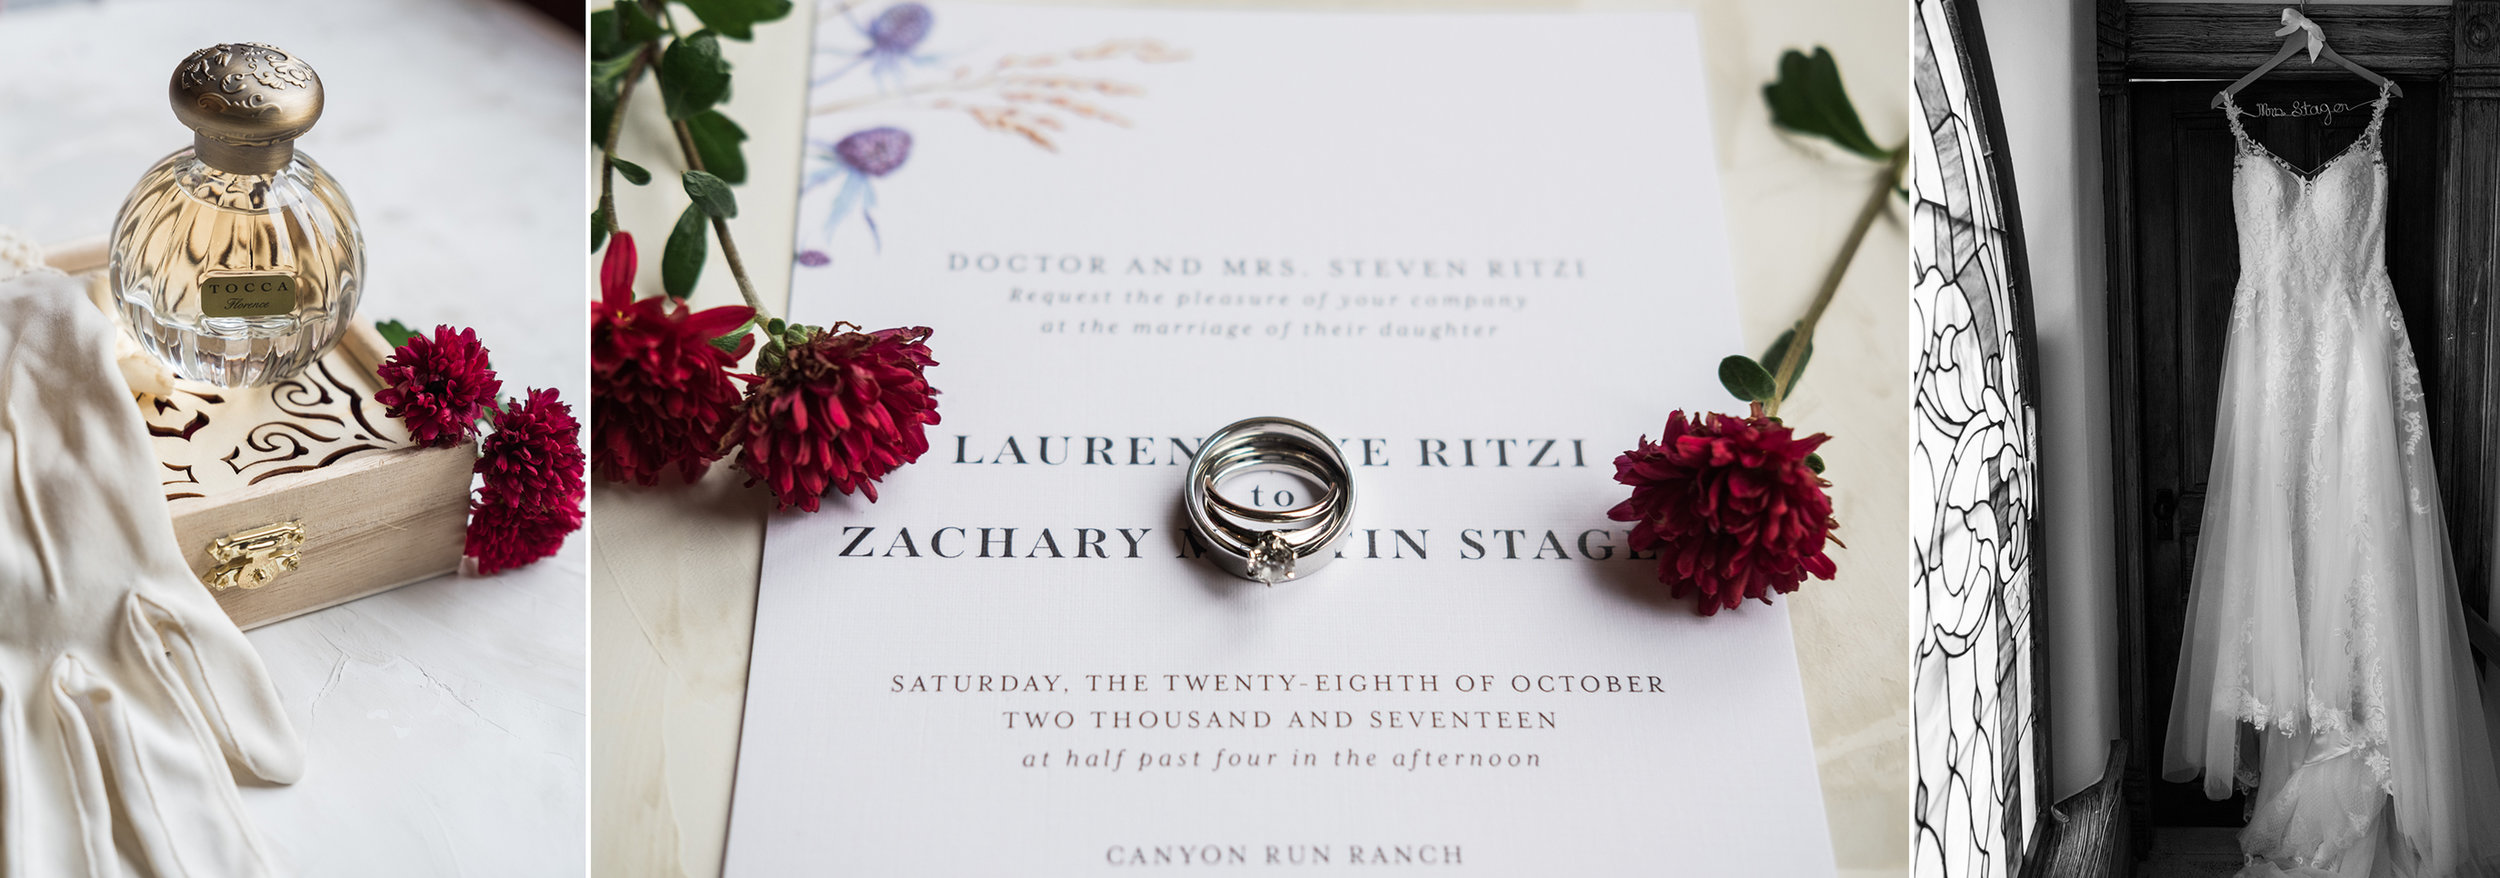 Lauren&Zack_Wedding_BlogComposit_0001.jpg